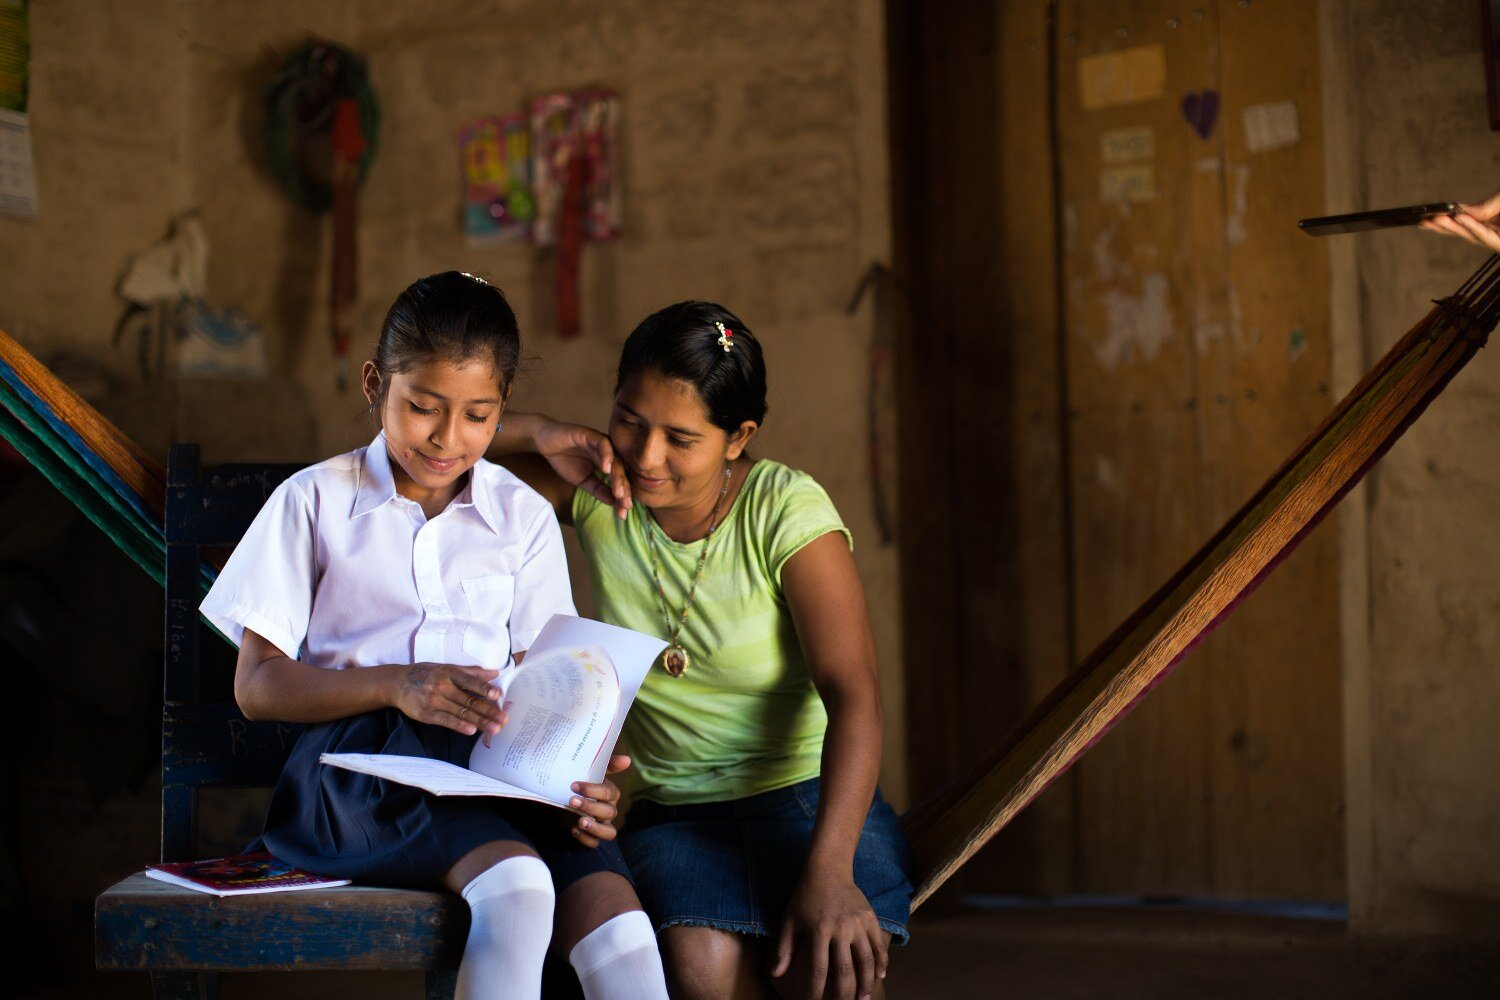 Mom doing class with her daughter - humanitarian photography-Exposure.jpg